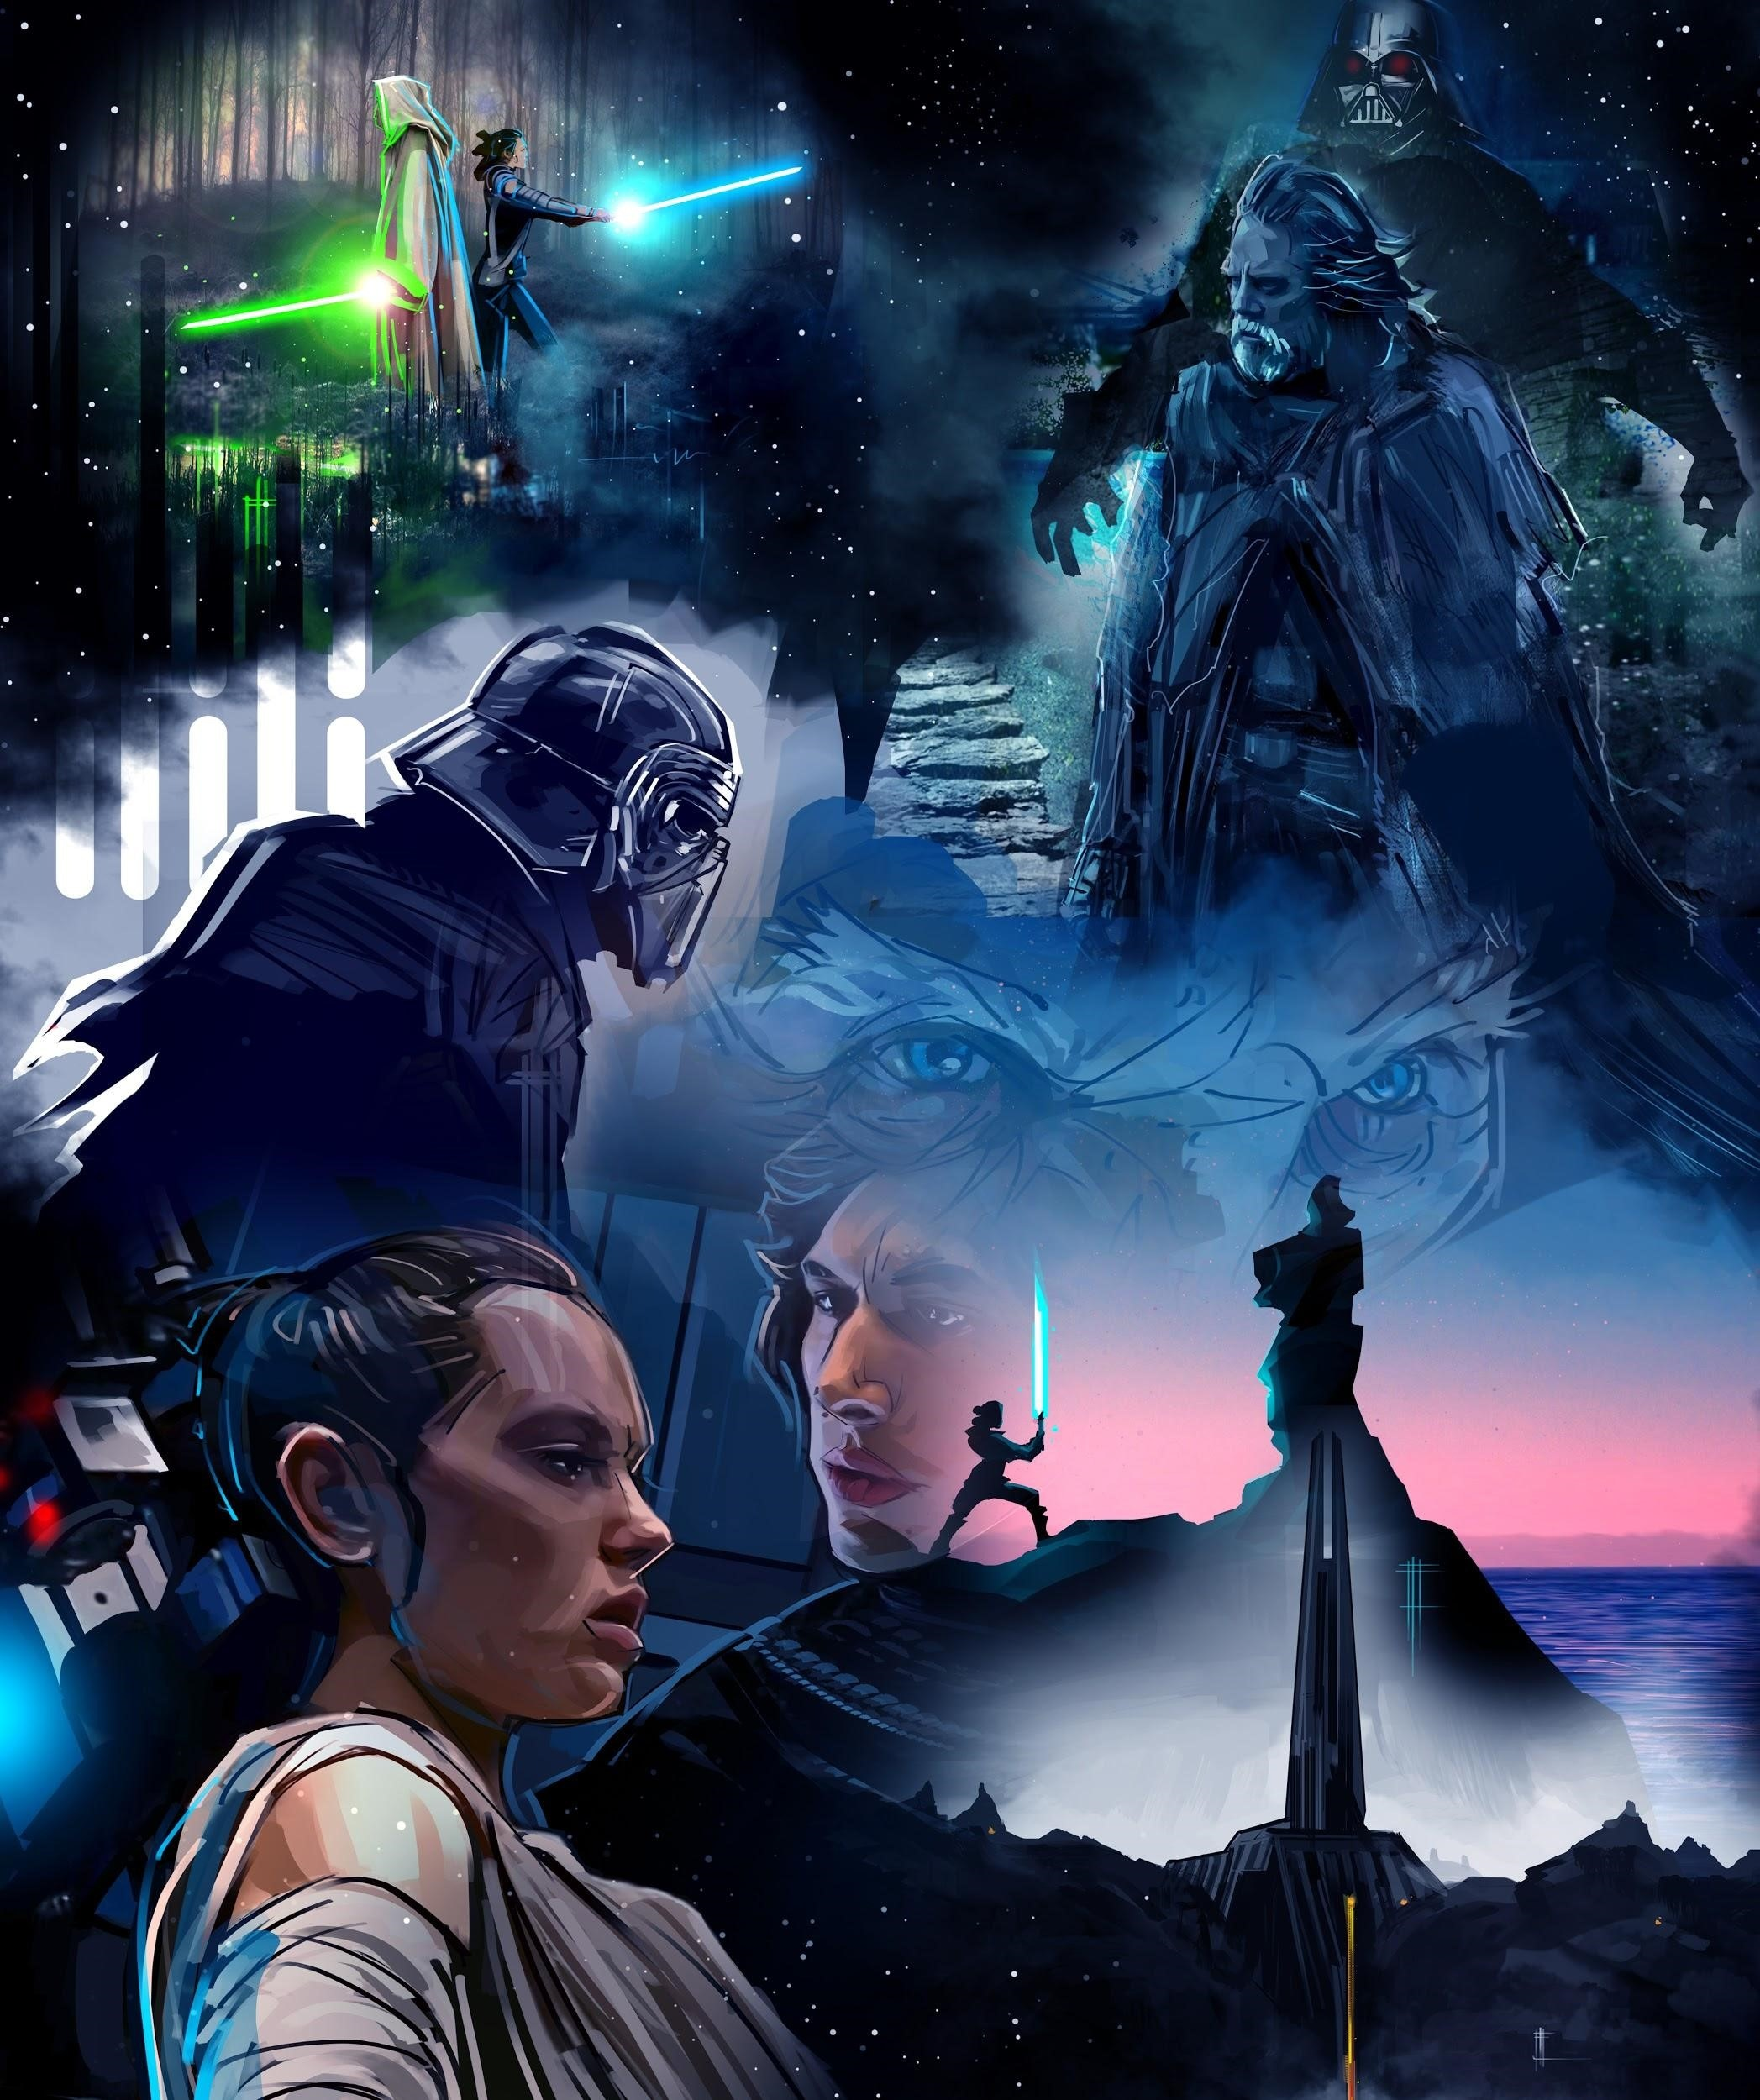 Venamis star wars illustration